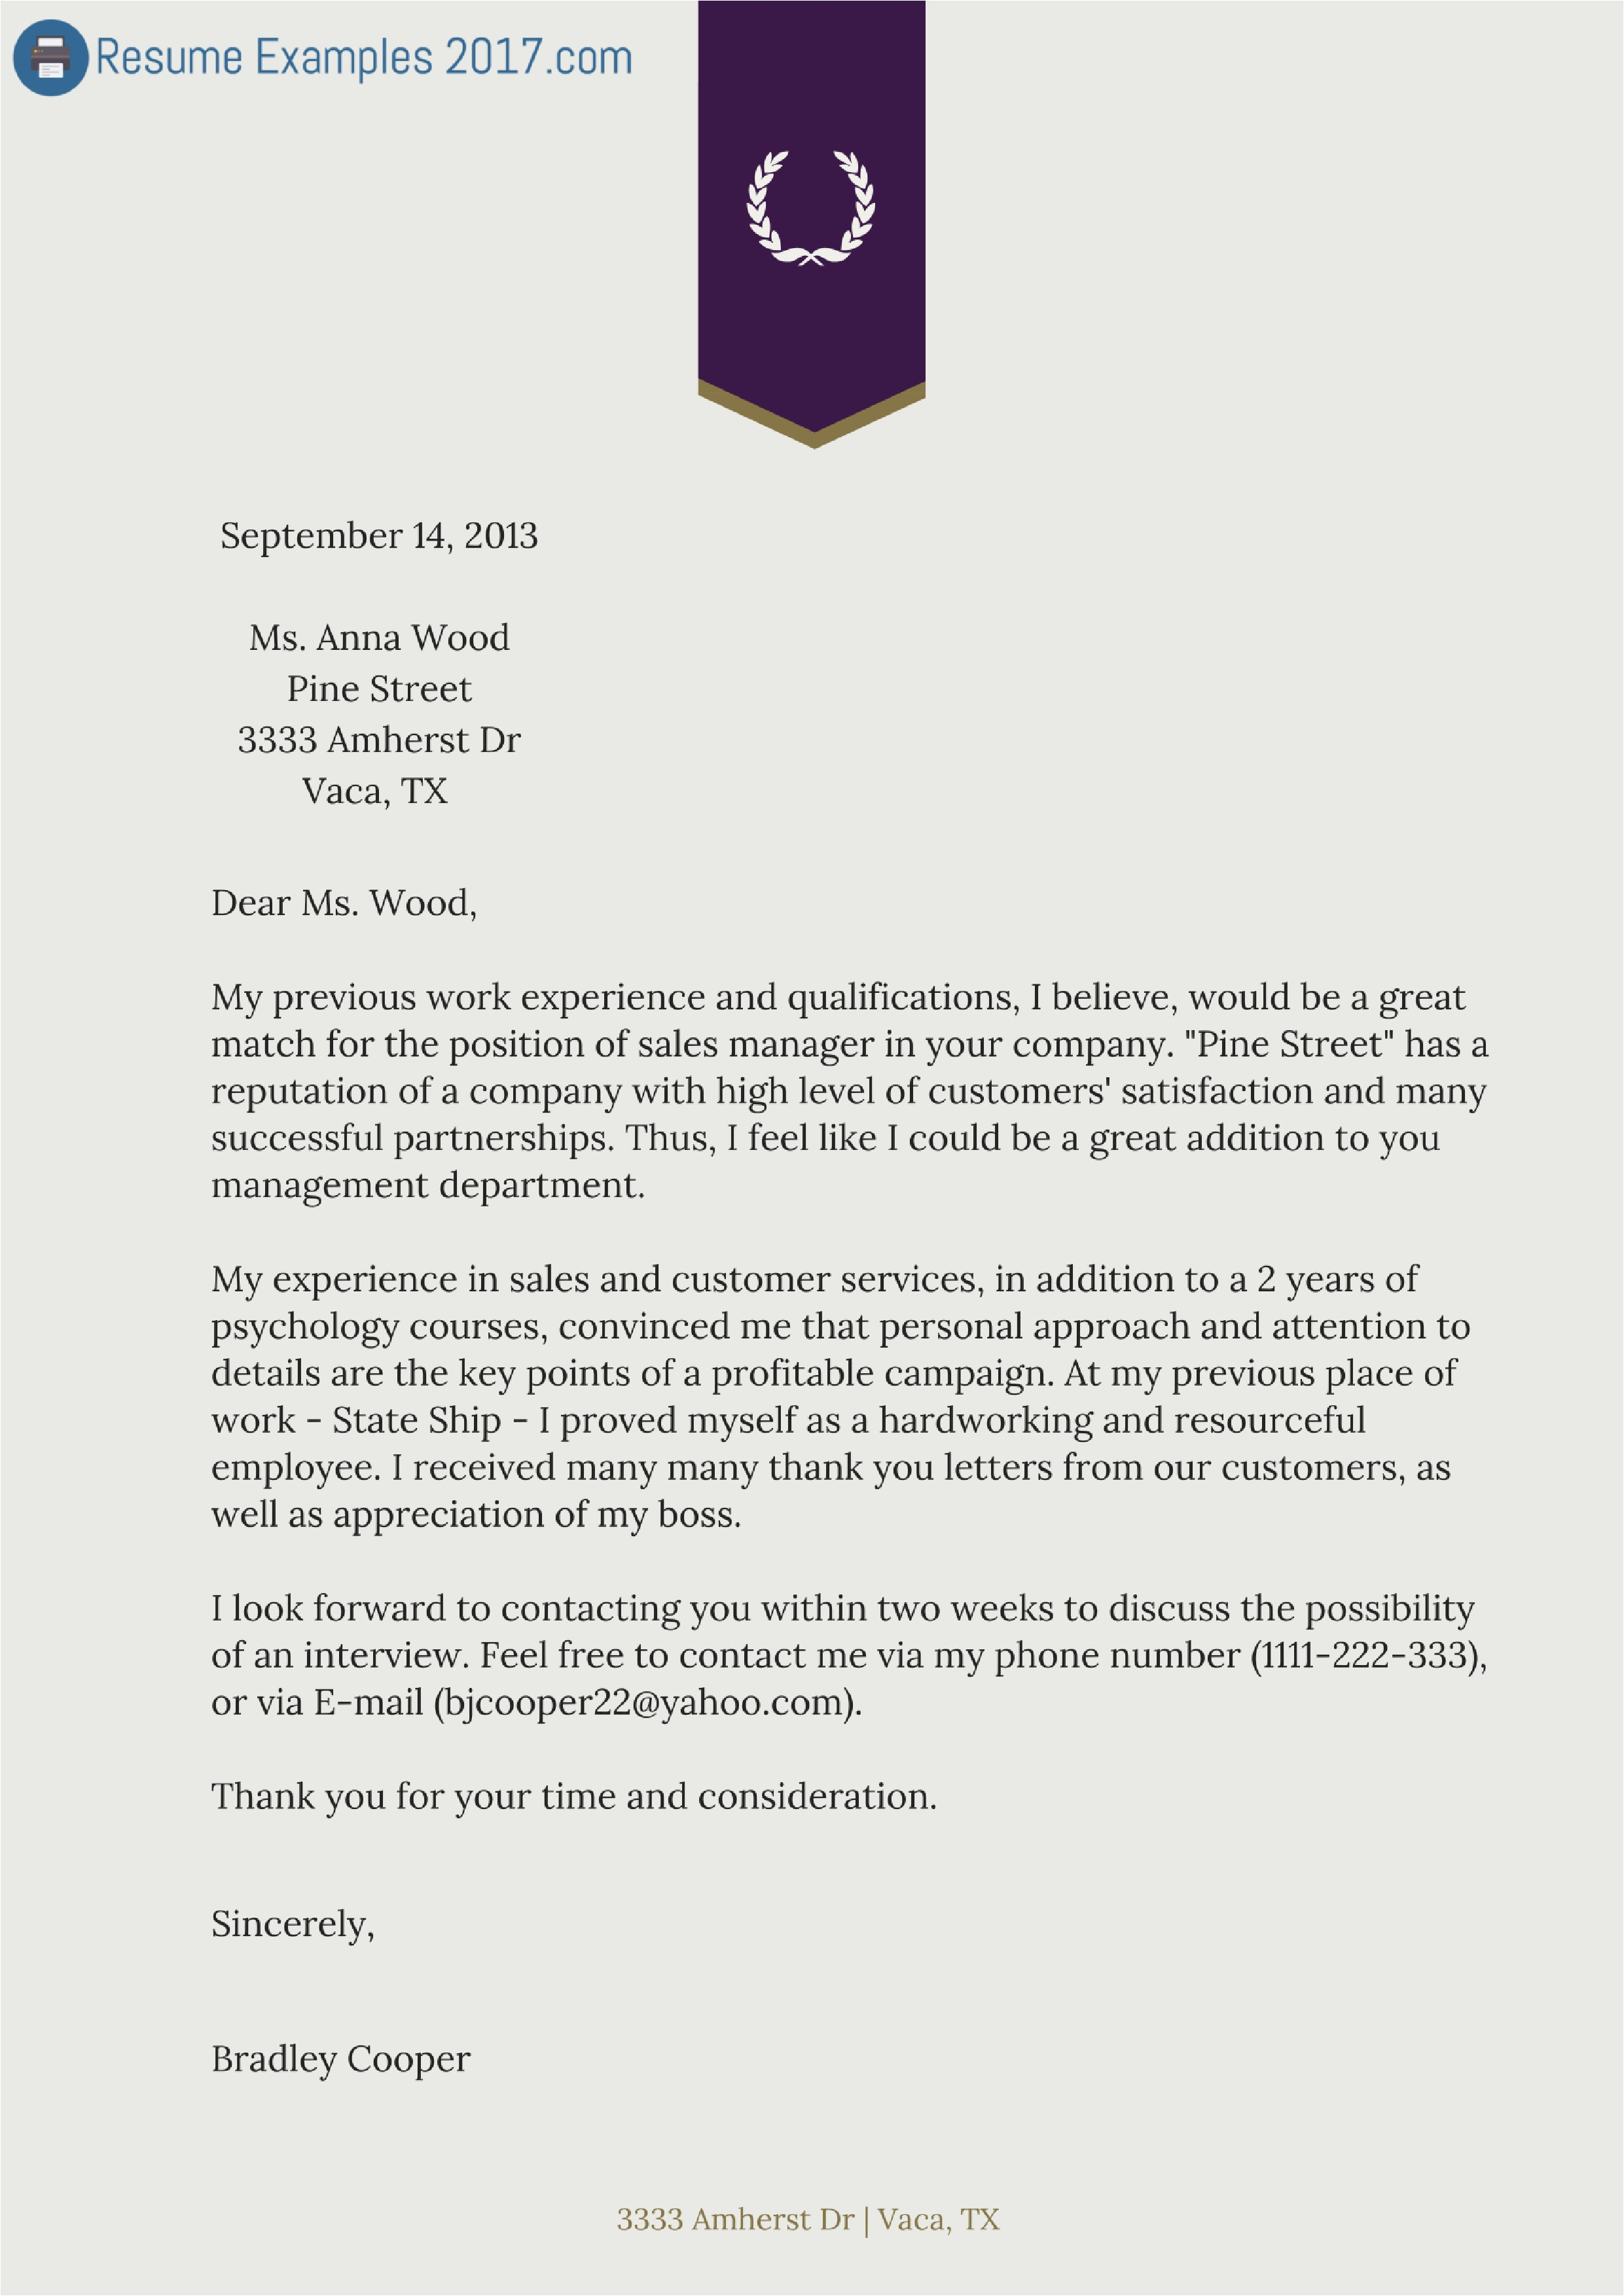 Cover Letter Templats Download Cover Letter Samples